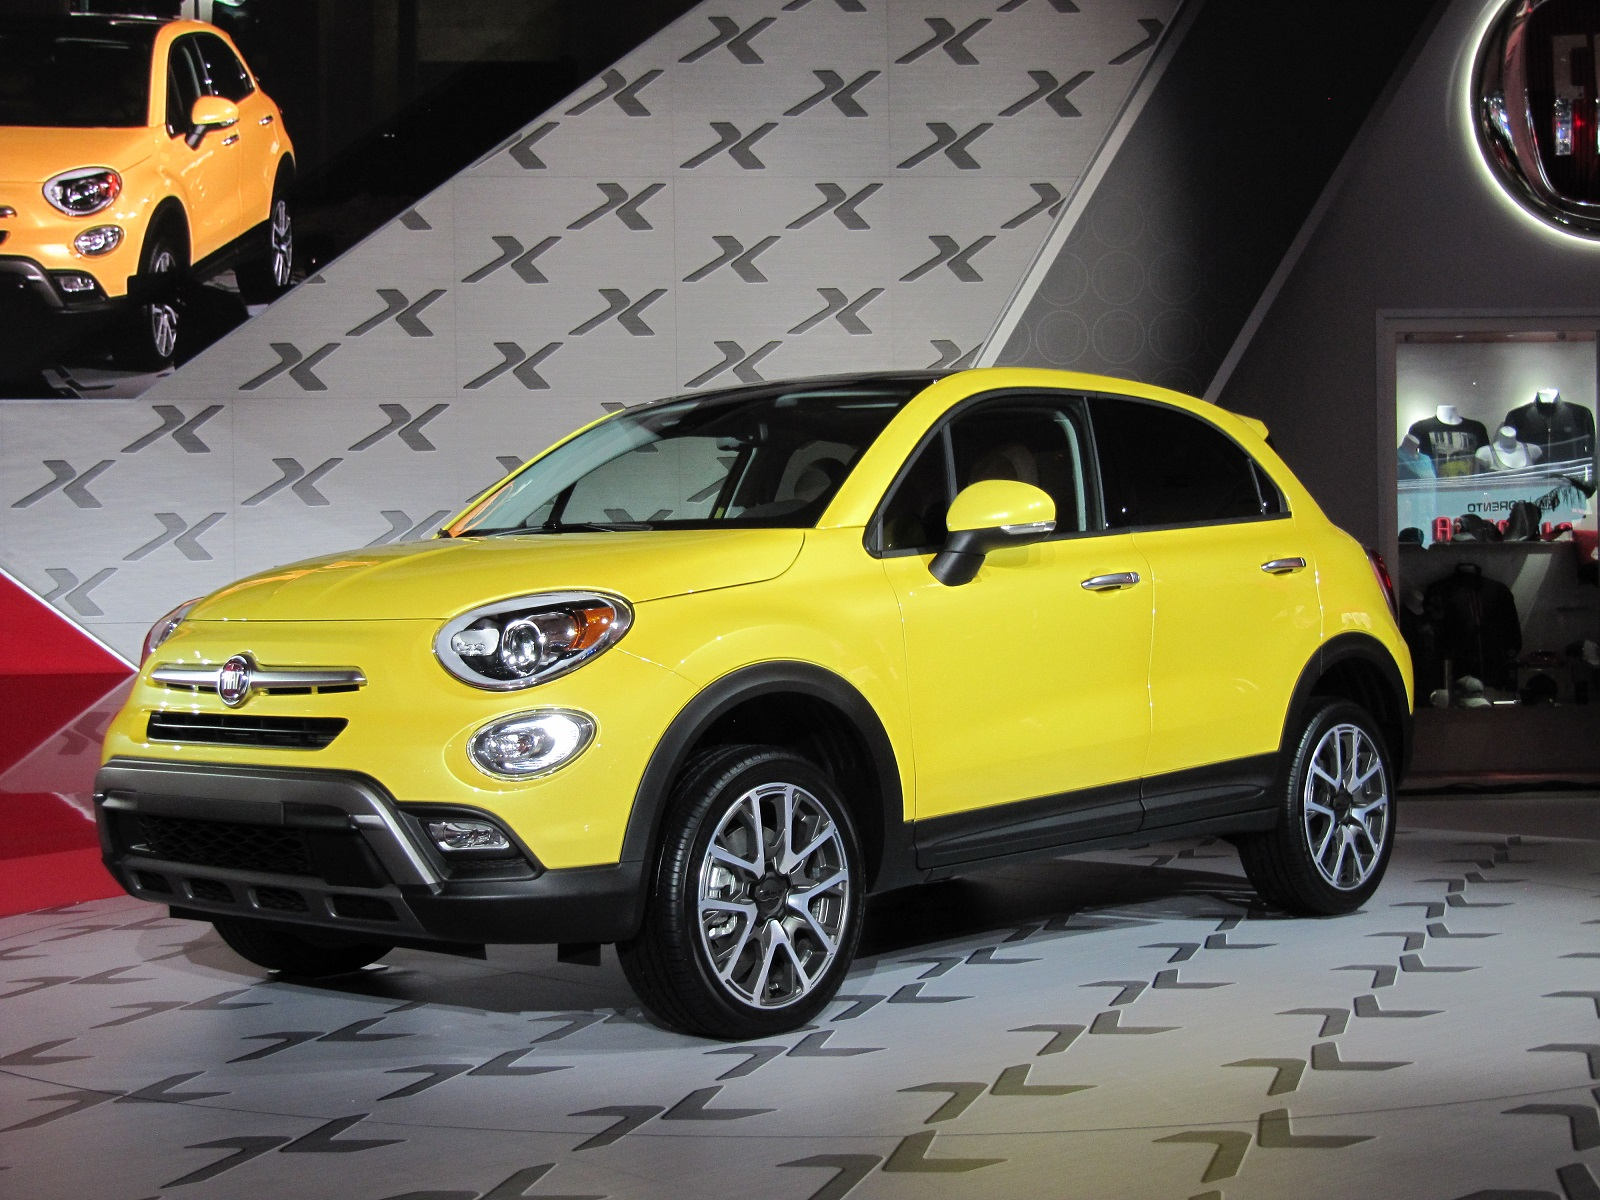 2016 fiat 500x live photos and video from 2014 la auto show. Black Bedroom Furniture Sets. Home Design Ideas